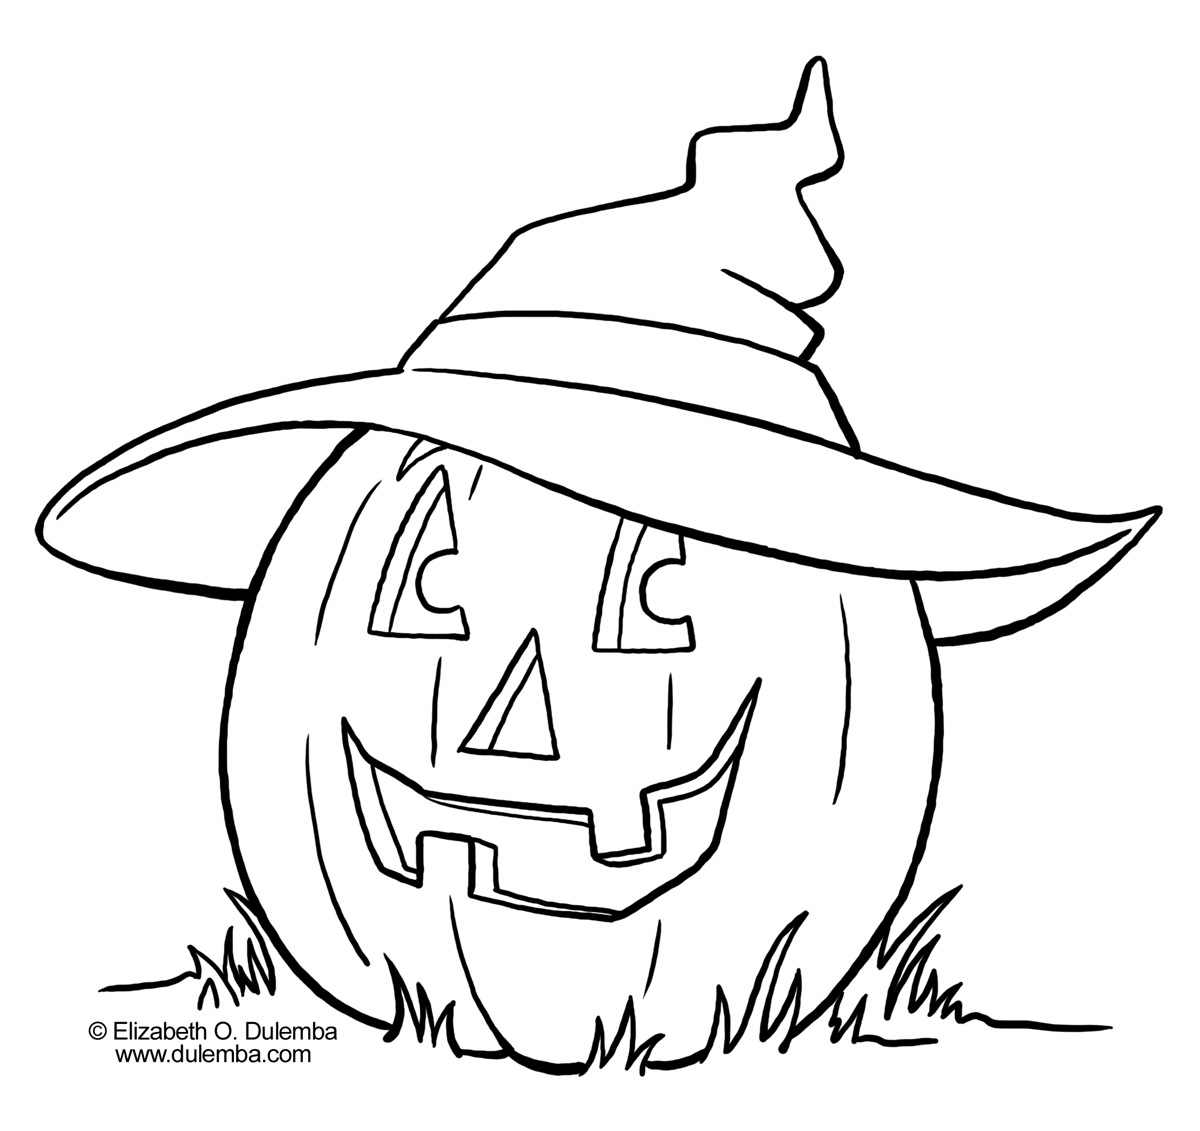 free coloring pages of pumpkins pumpkin patch coloring page free download on clipartmag pages coloring of pumpkins free